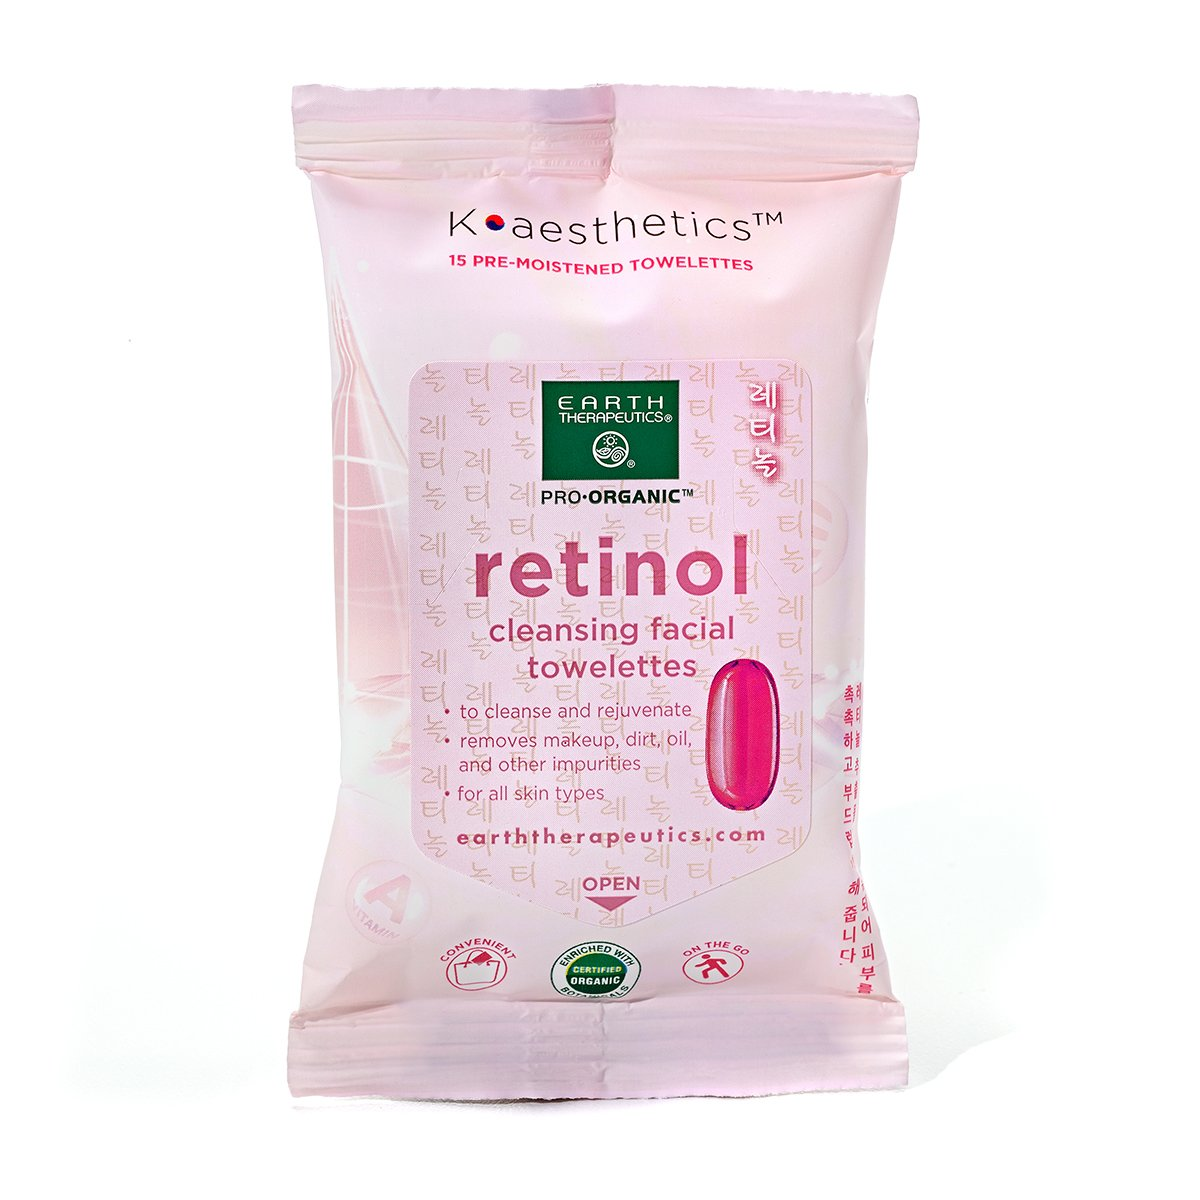 Retinol Cleansing Facial Towelettes - Travel Size